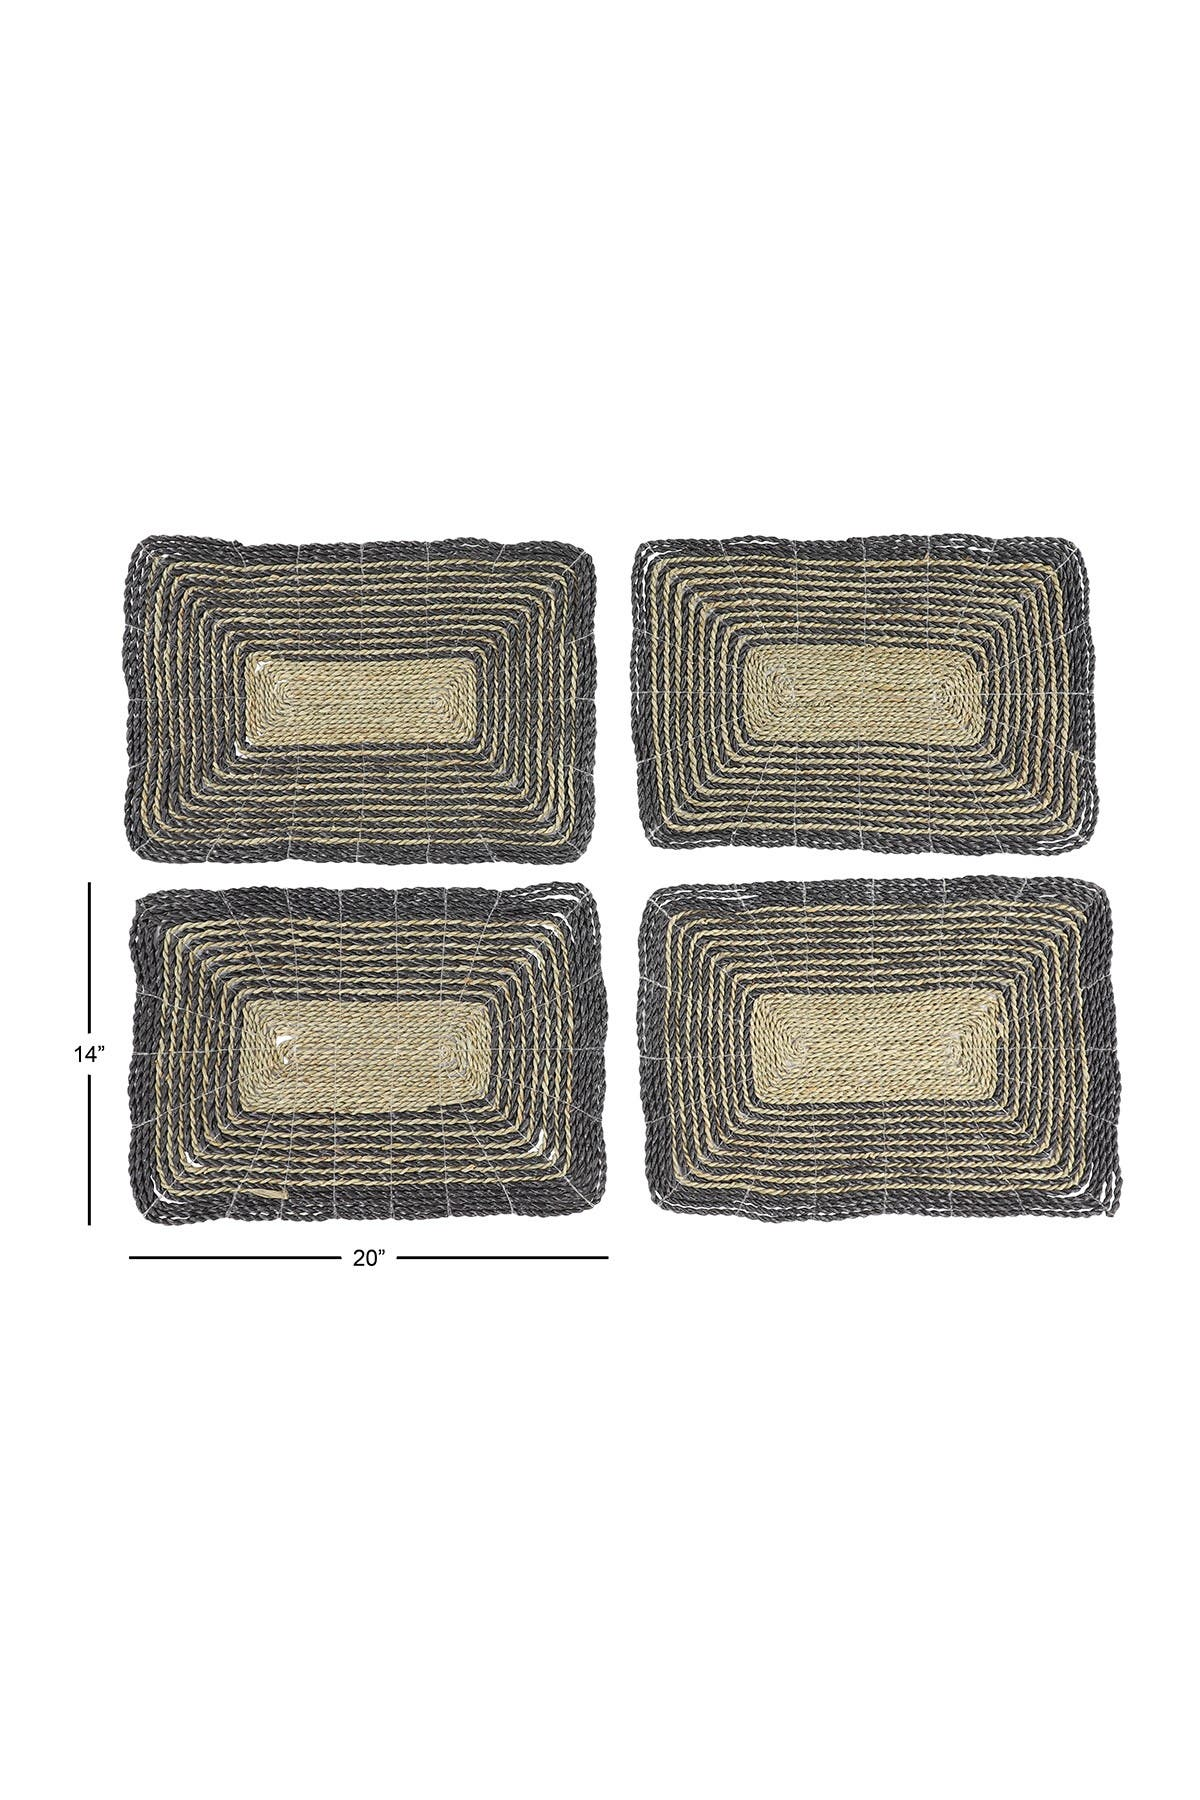 Image of Willow Row Rectangular Striped Gray & Natural Seagrass Placemats - Set of 4